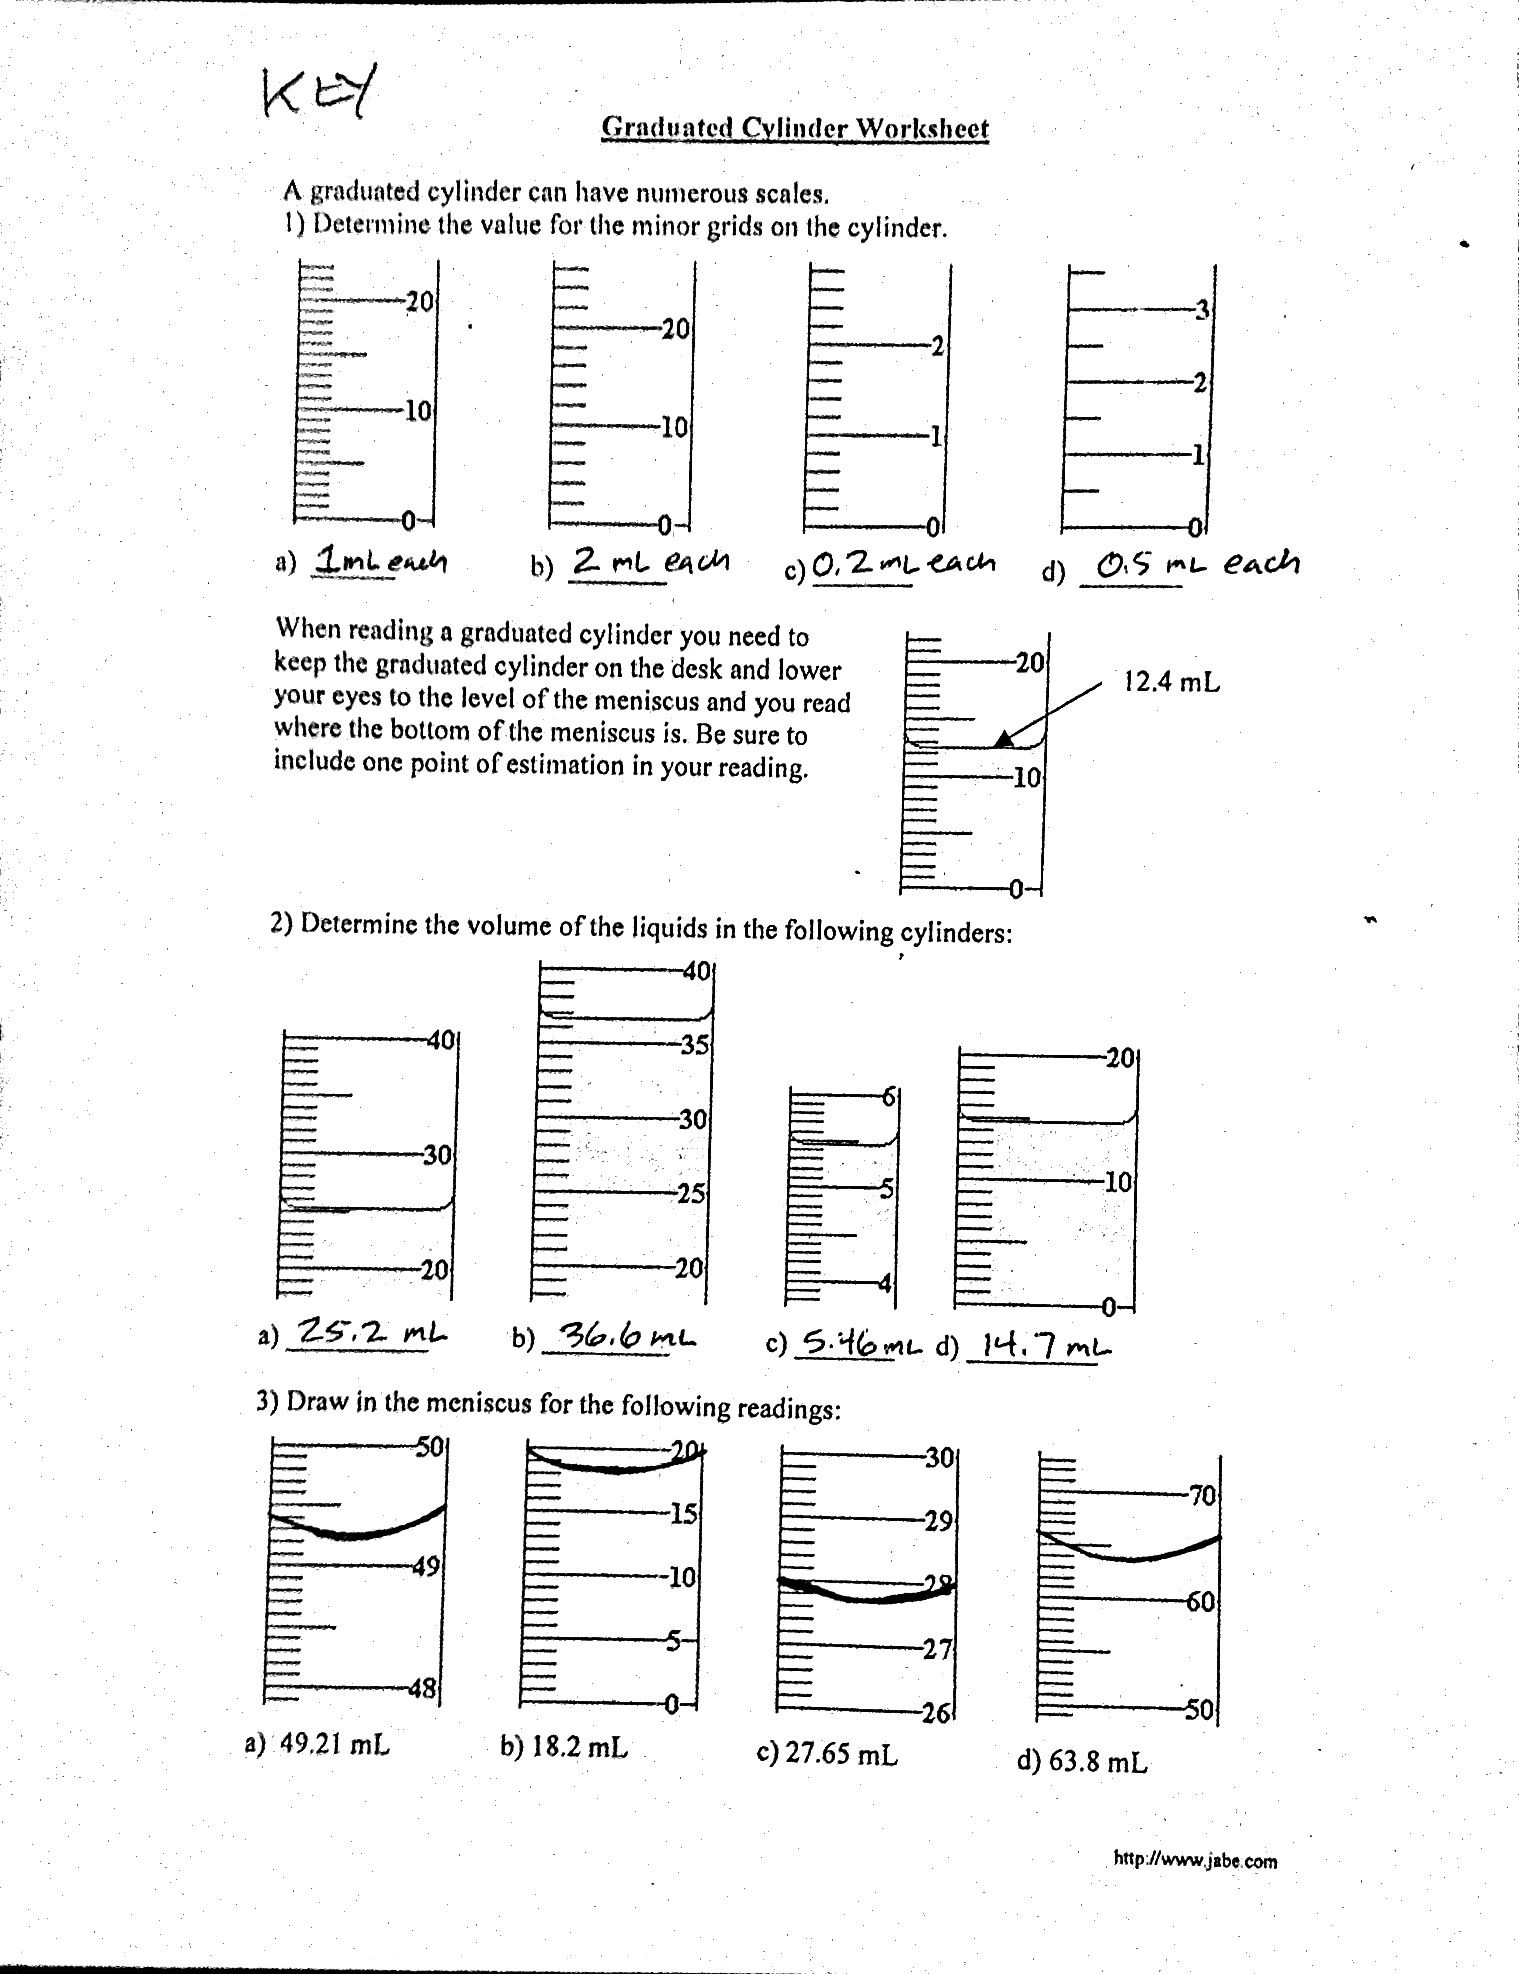 reading a graduated cylinder worksheet worksheets tataiza free printable worksheets and activities. Black Bedroom Furniture Sets. Home Design Ideas